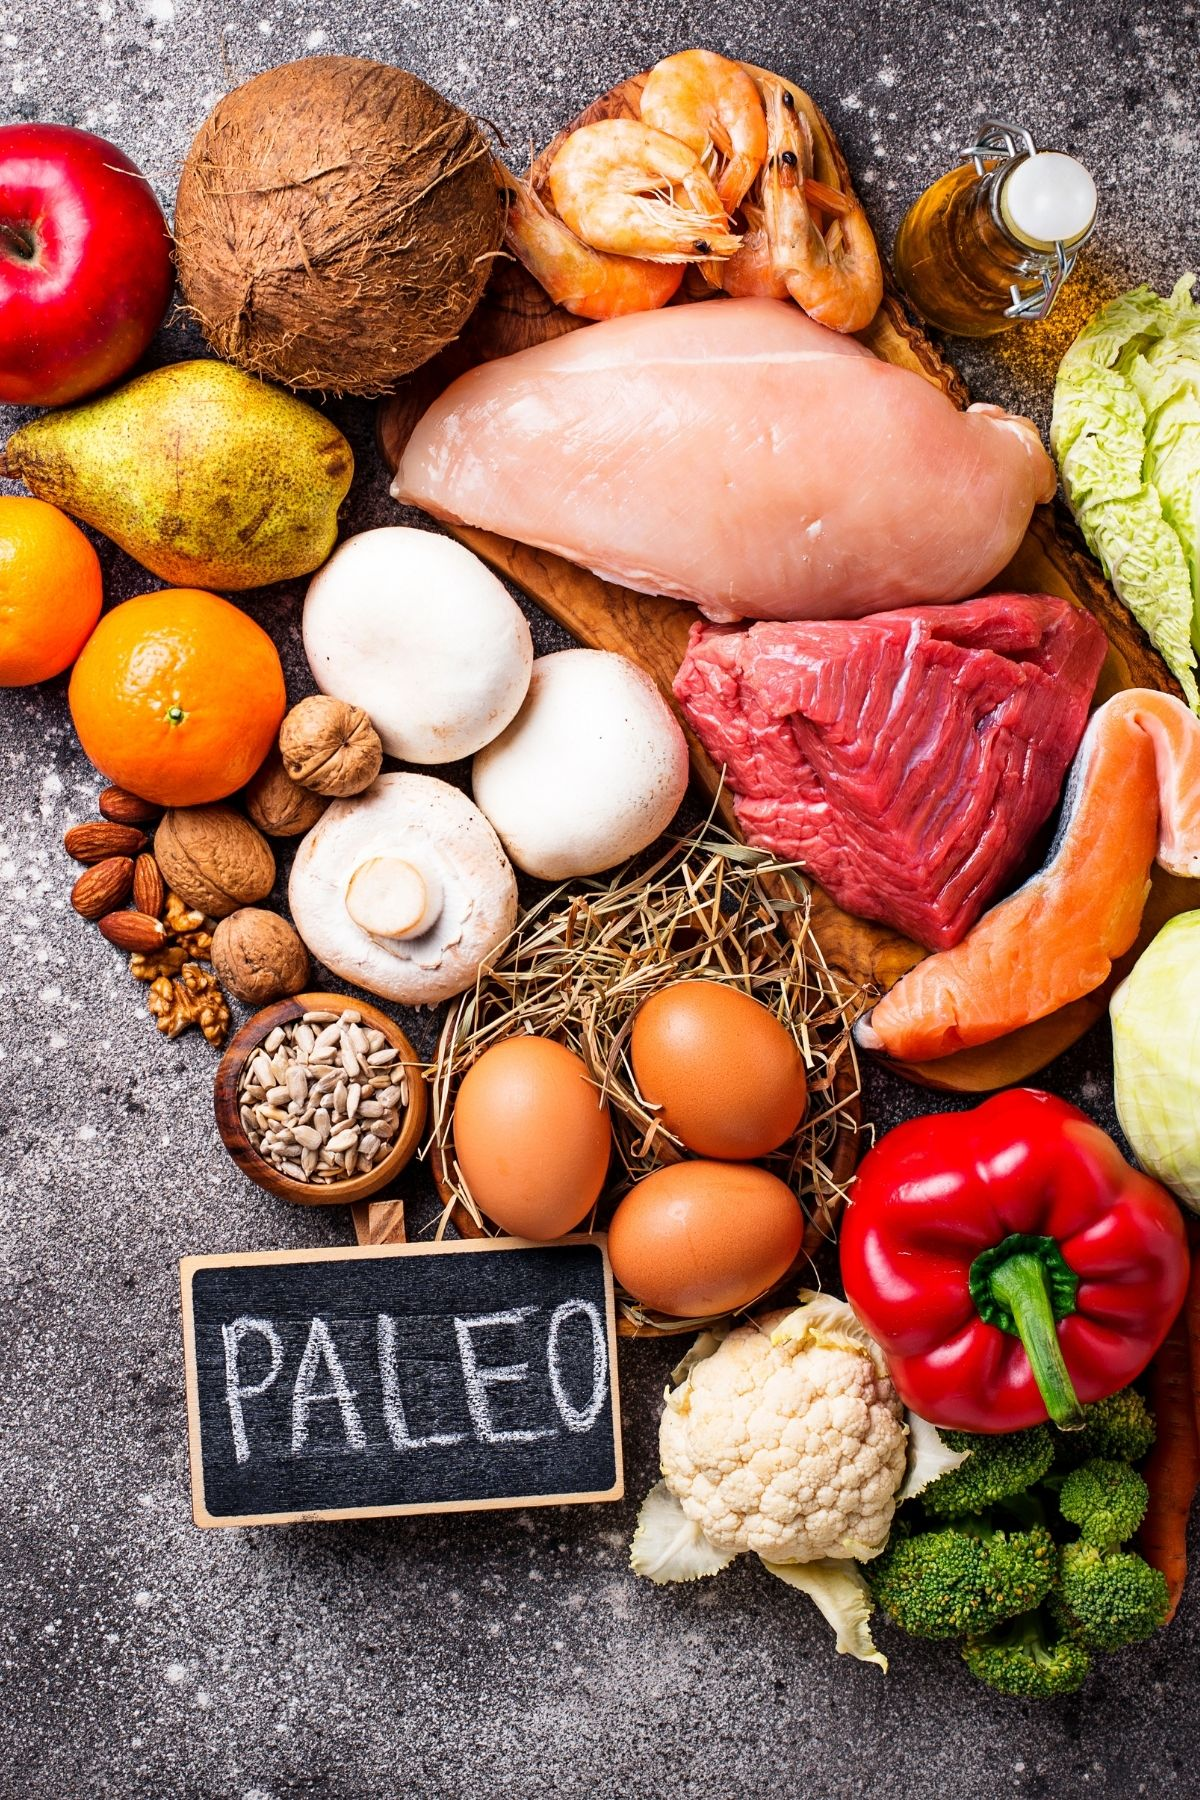 paleo diet foods on a table including meats, vegetables, fish, and eggs